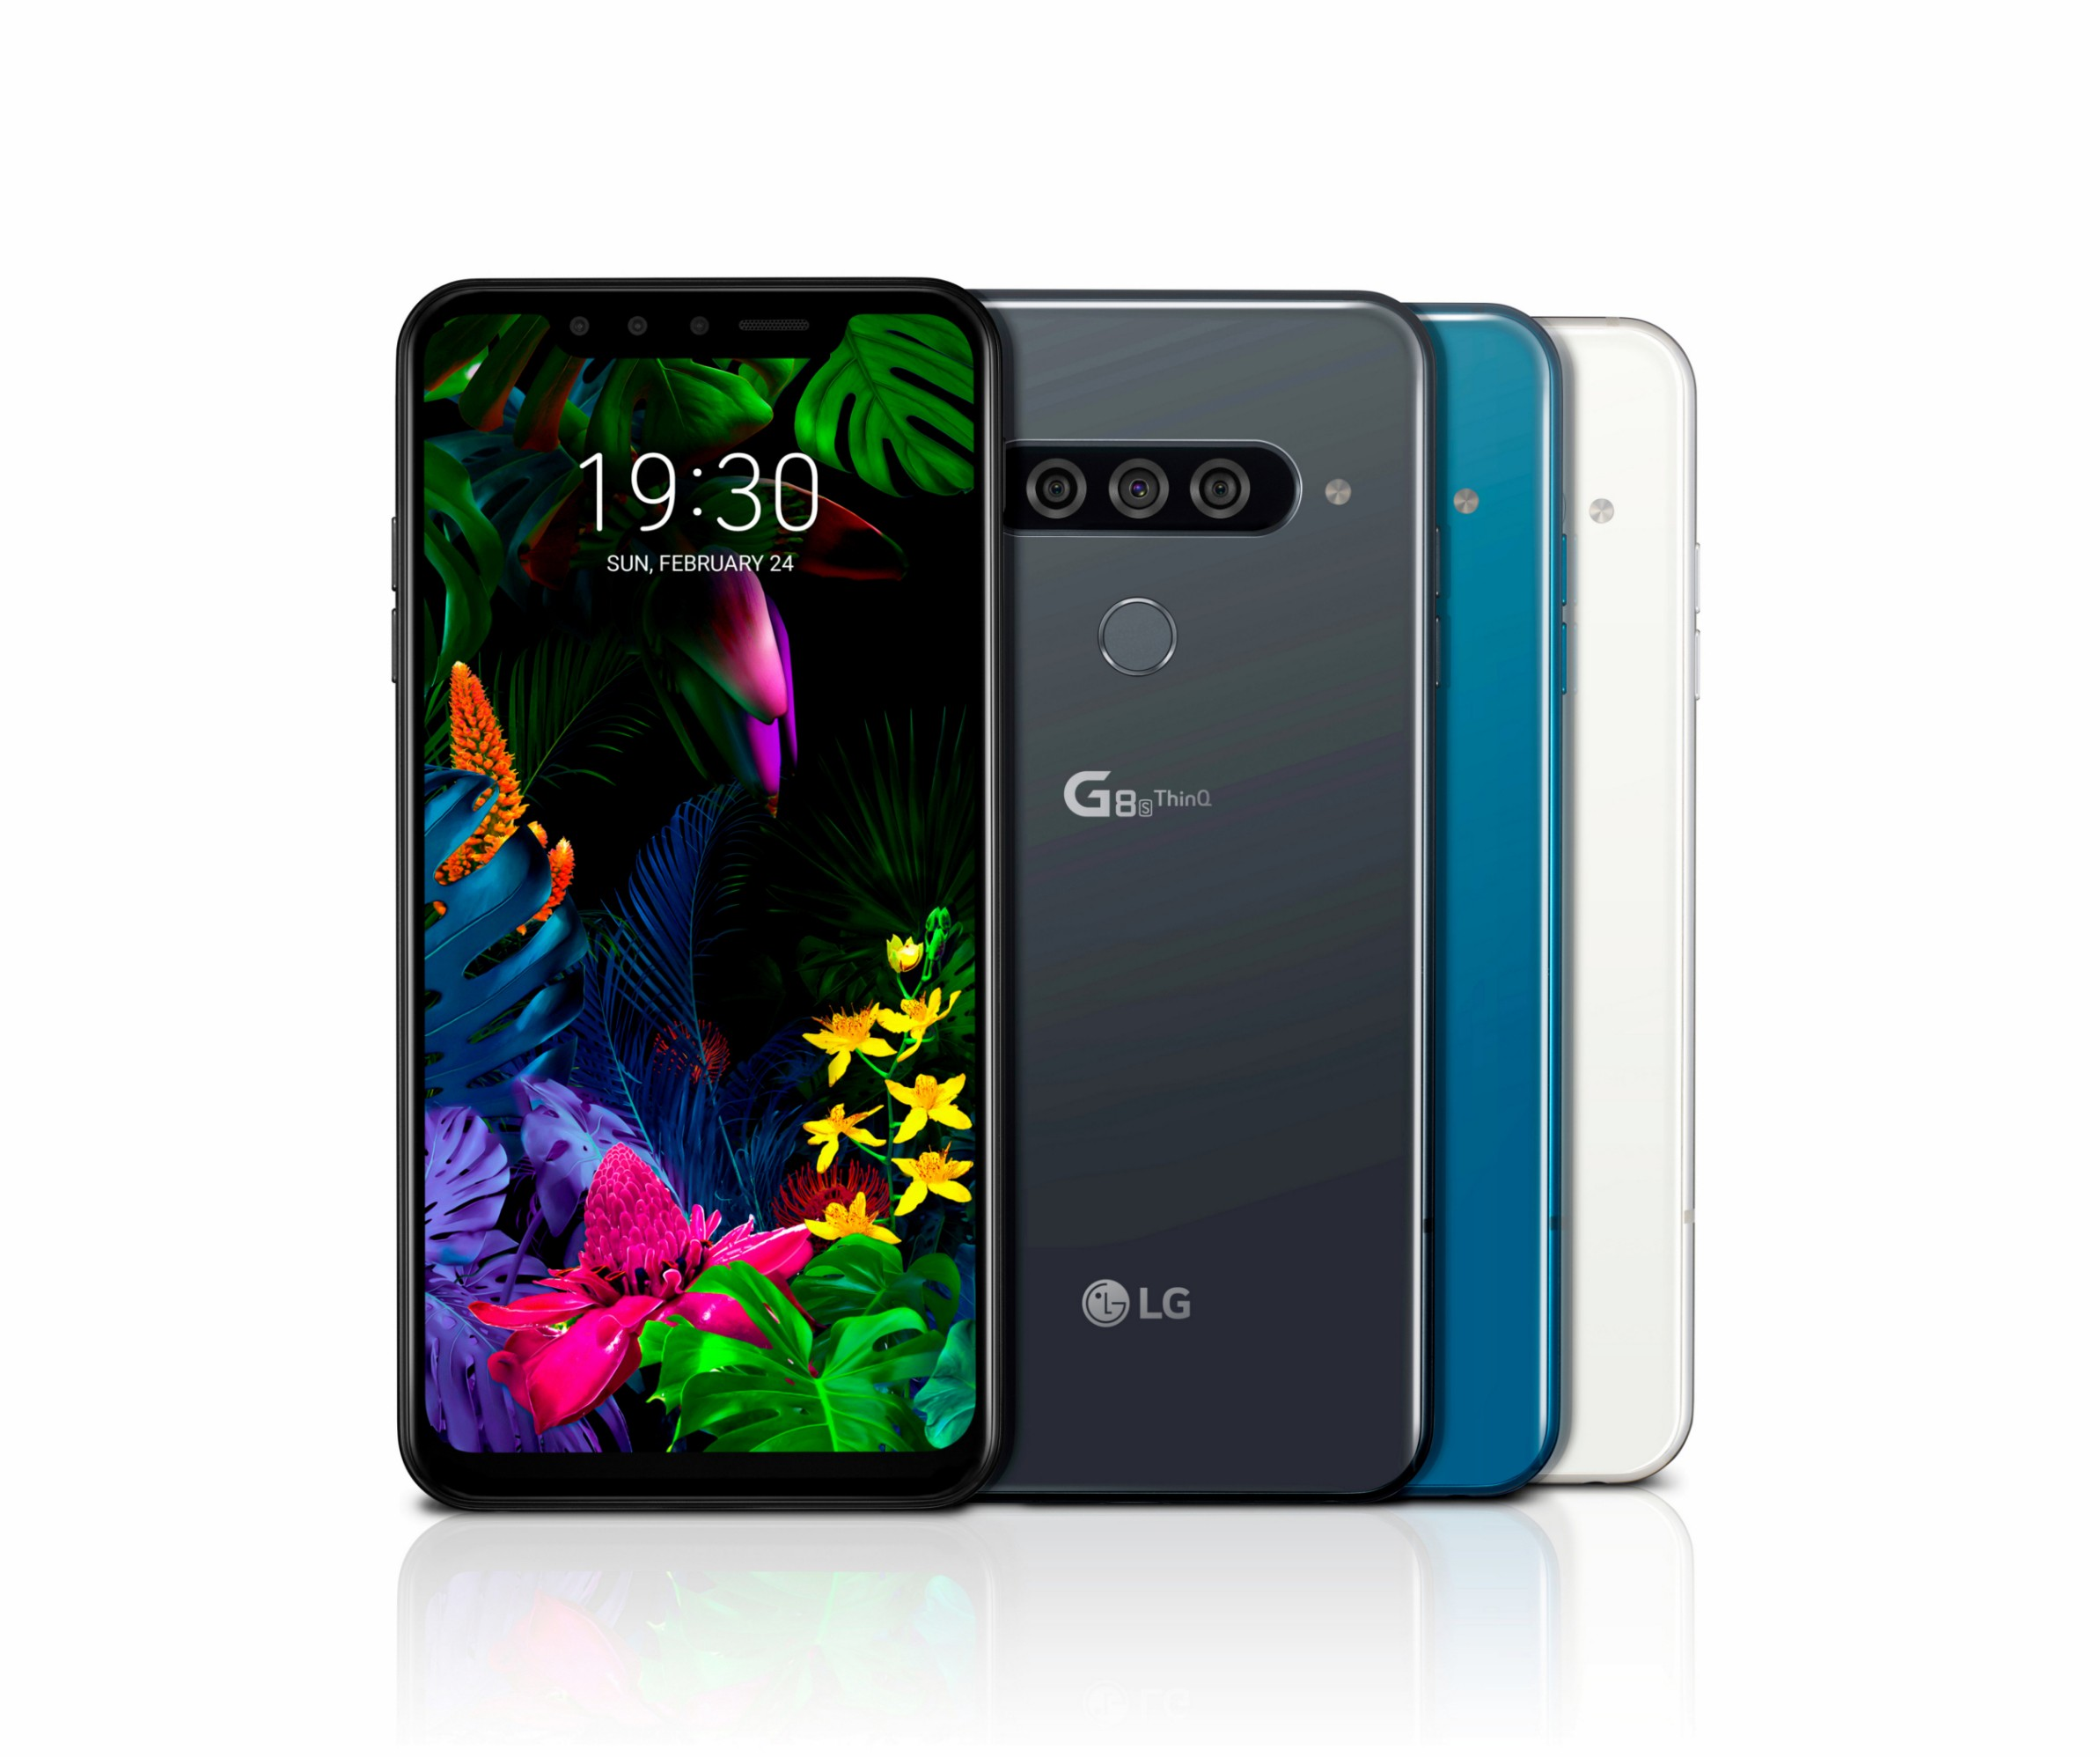 The front and rear view of the LG G8S ThinQ in Mirror Black, Mirror Teal and Mirror White